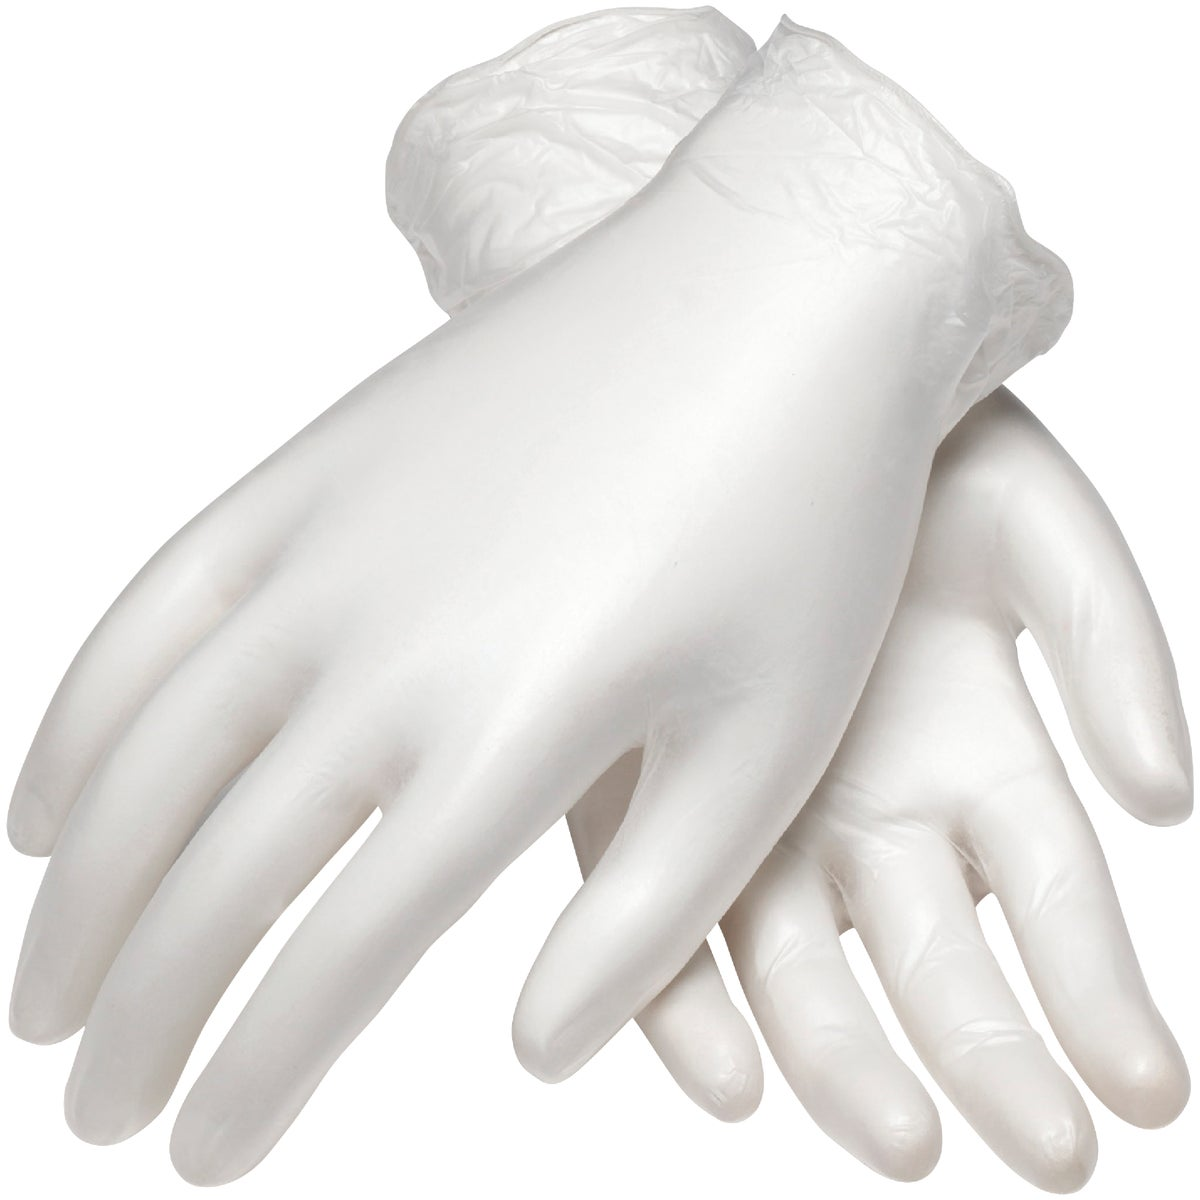 MD POWDERED VINYL GLOVES - 2700/M by West Chester Incom